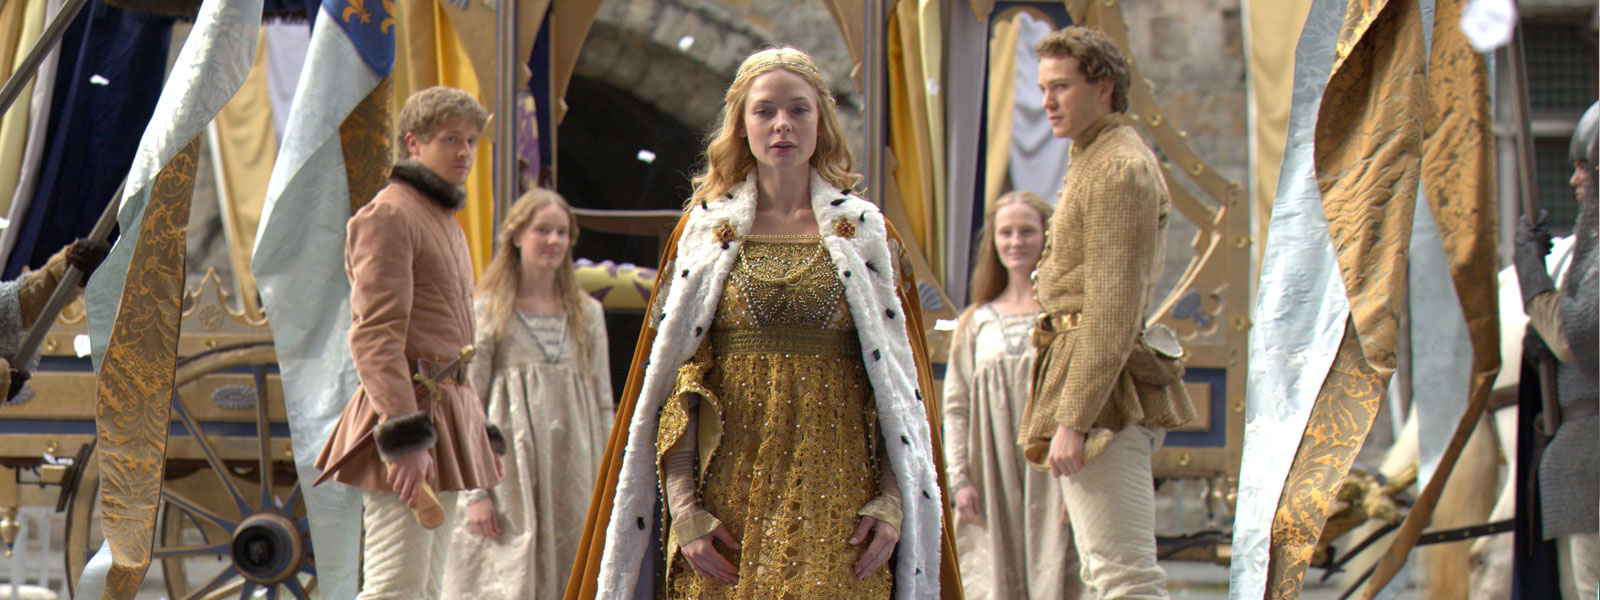 The White Queen - Season 1